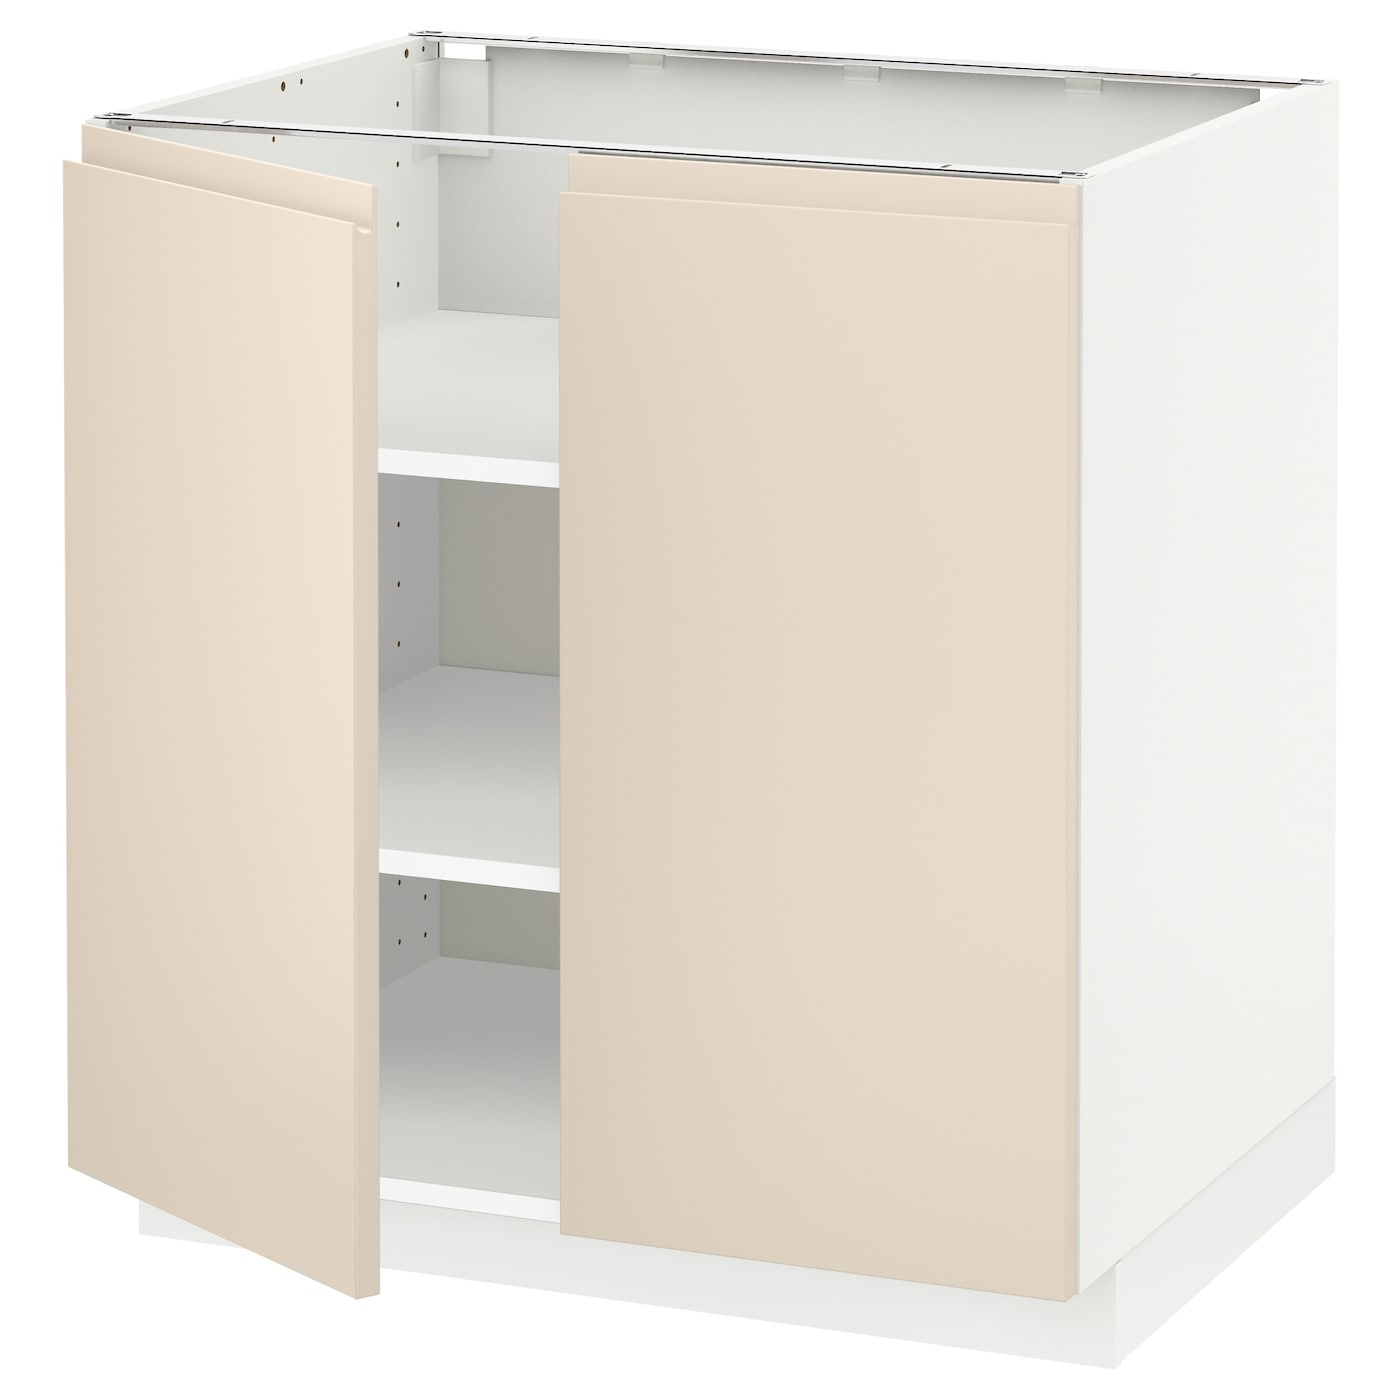 Metod base cabinet with shelves 2 doors white voxtorp for Off the shelf kitchen units